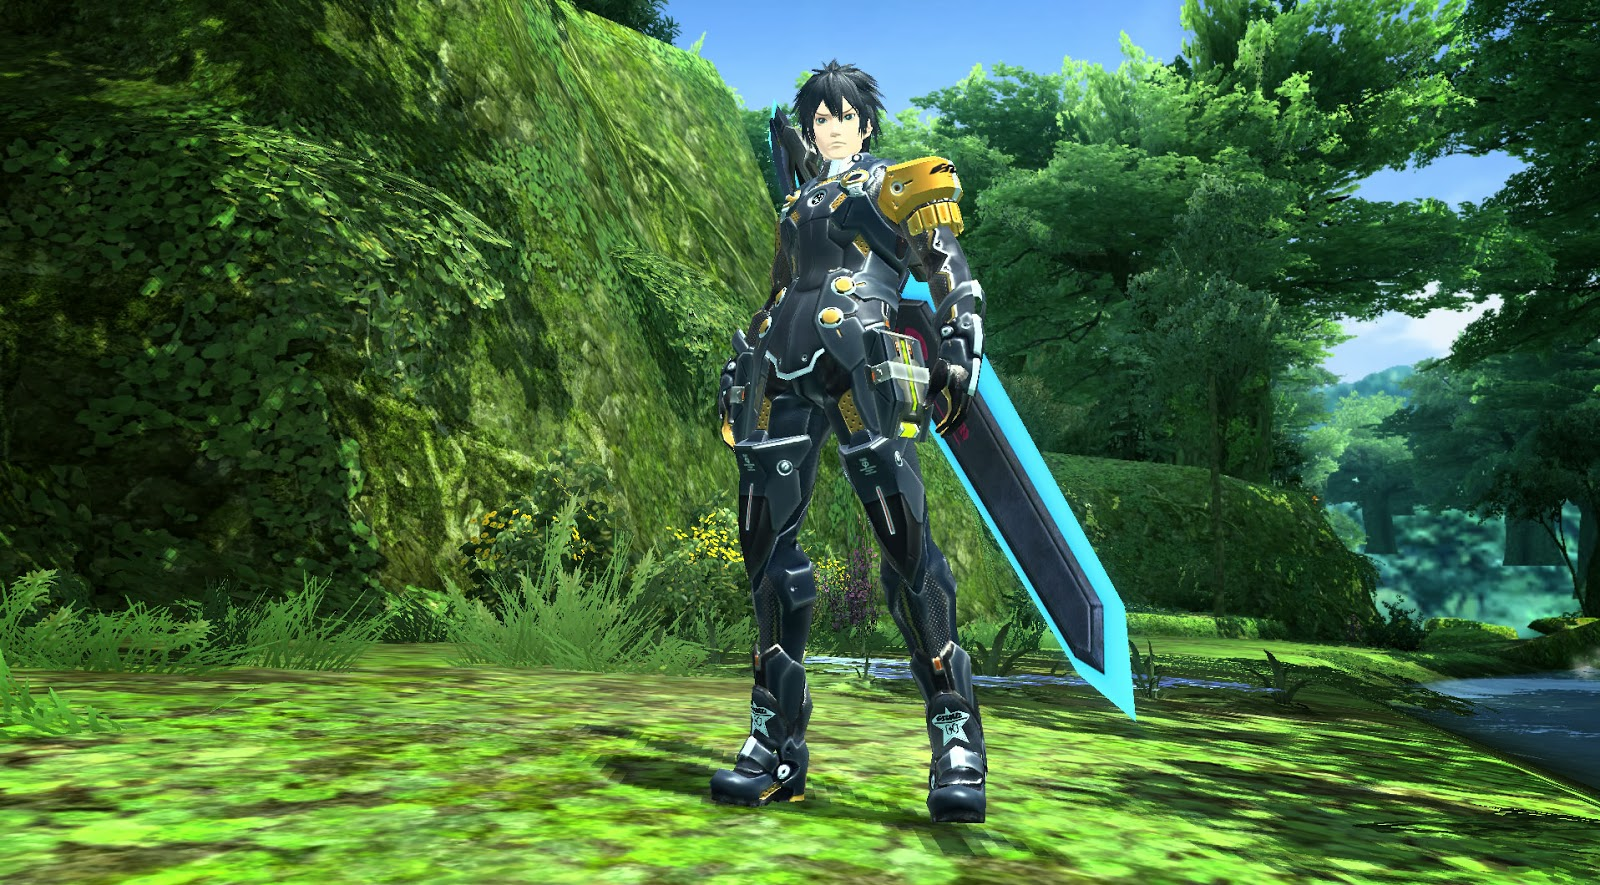 Phantasy star online ver 2 pc download